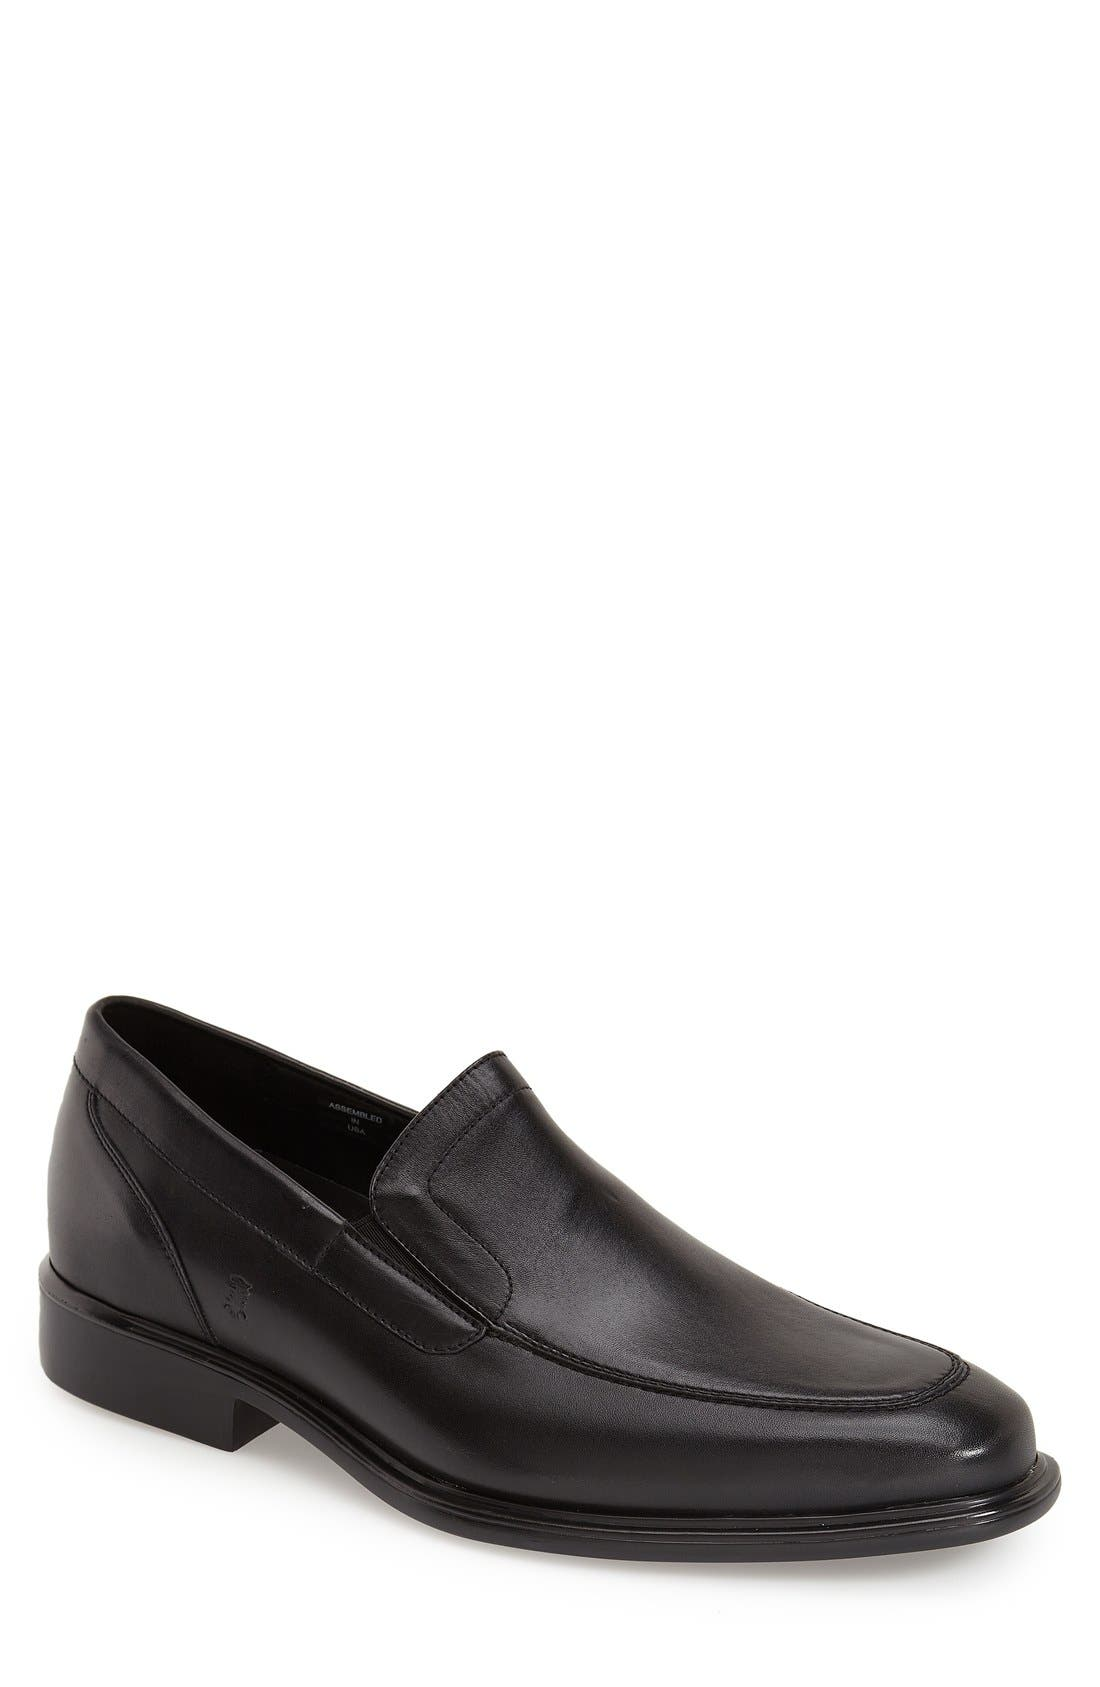 'Chancellor' Venetian Loafer,                         Main,                         color, BLACK